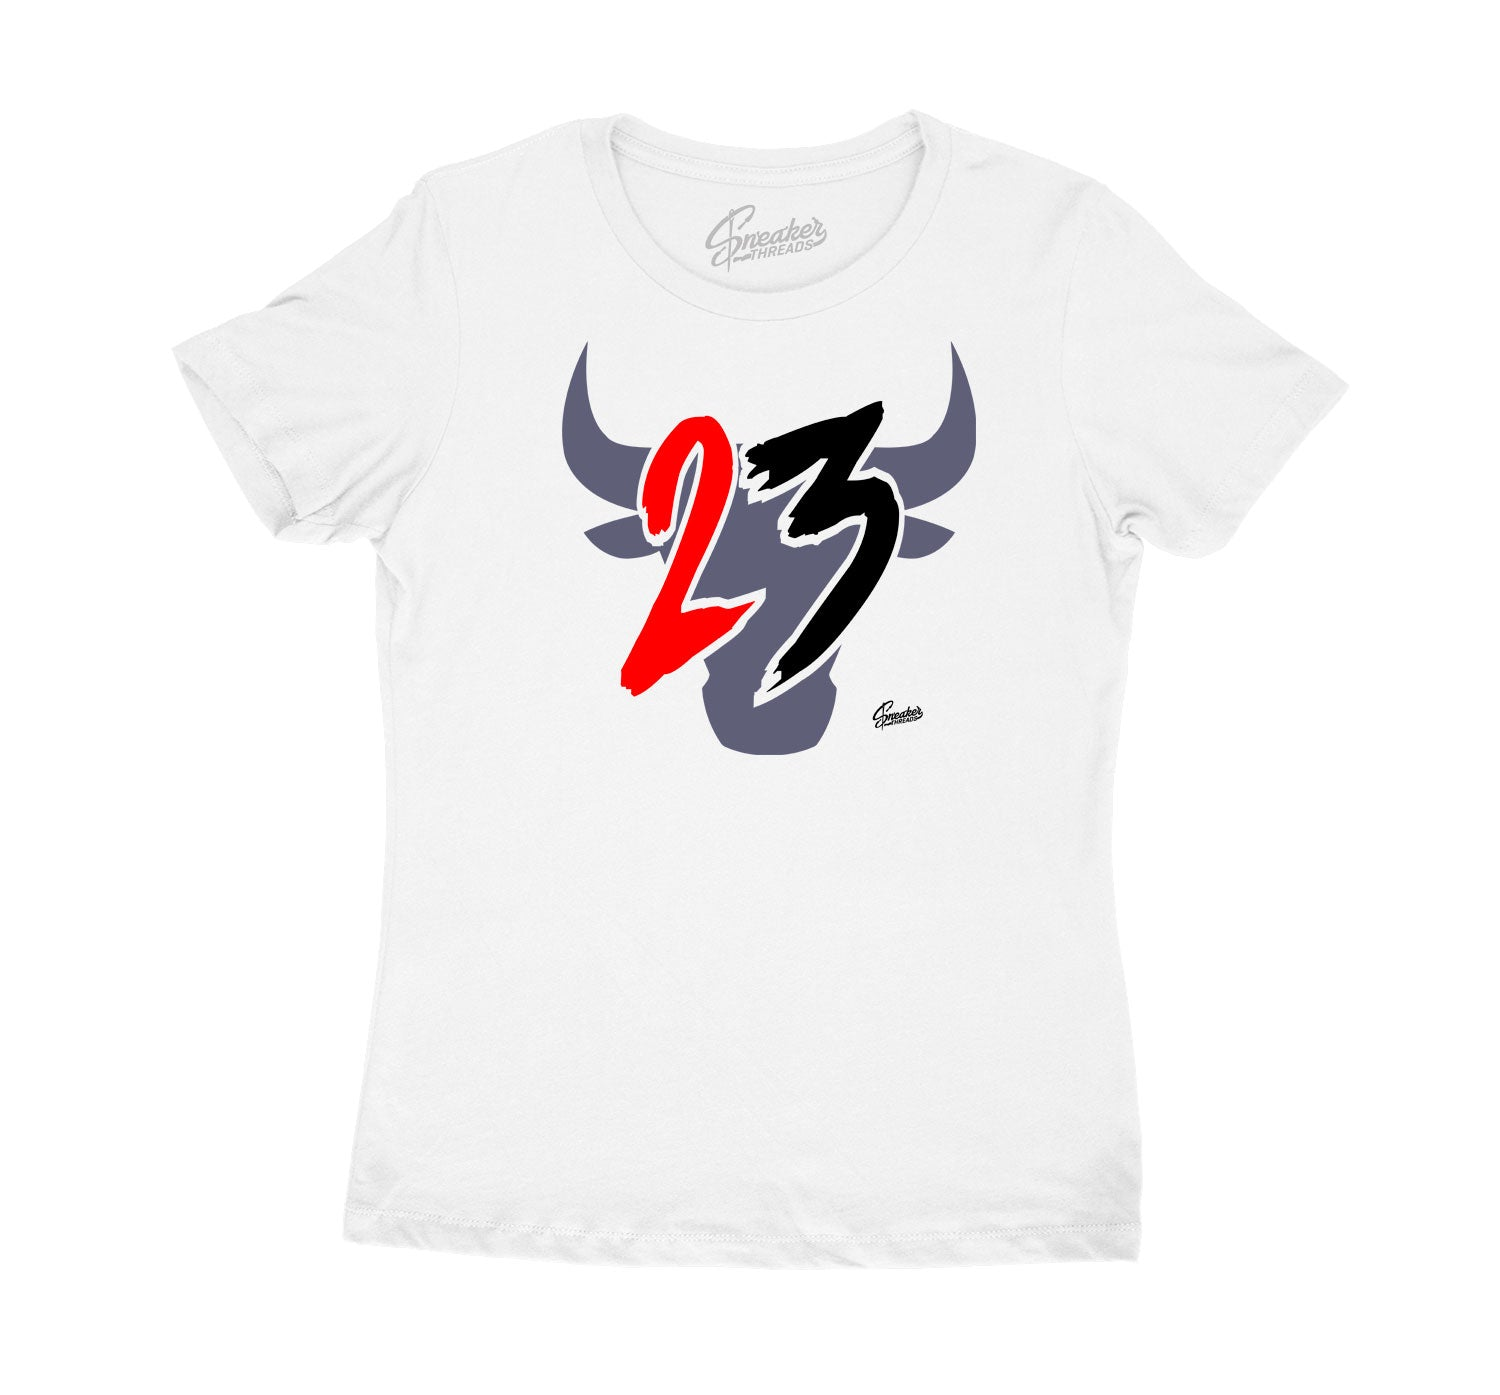 fire denim Jordan 3 womens t shirts